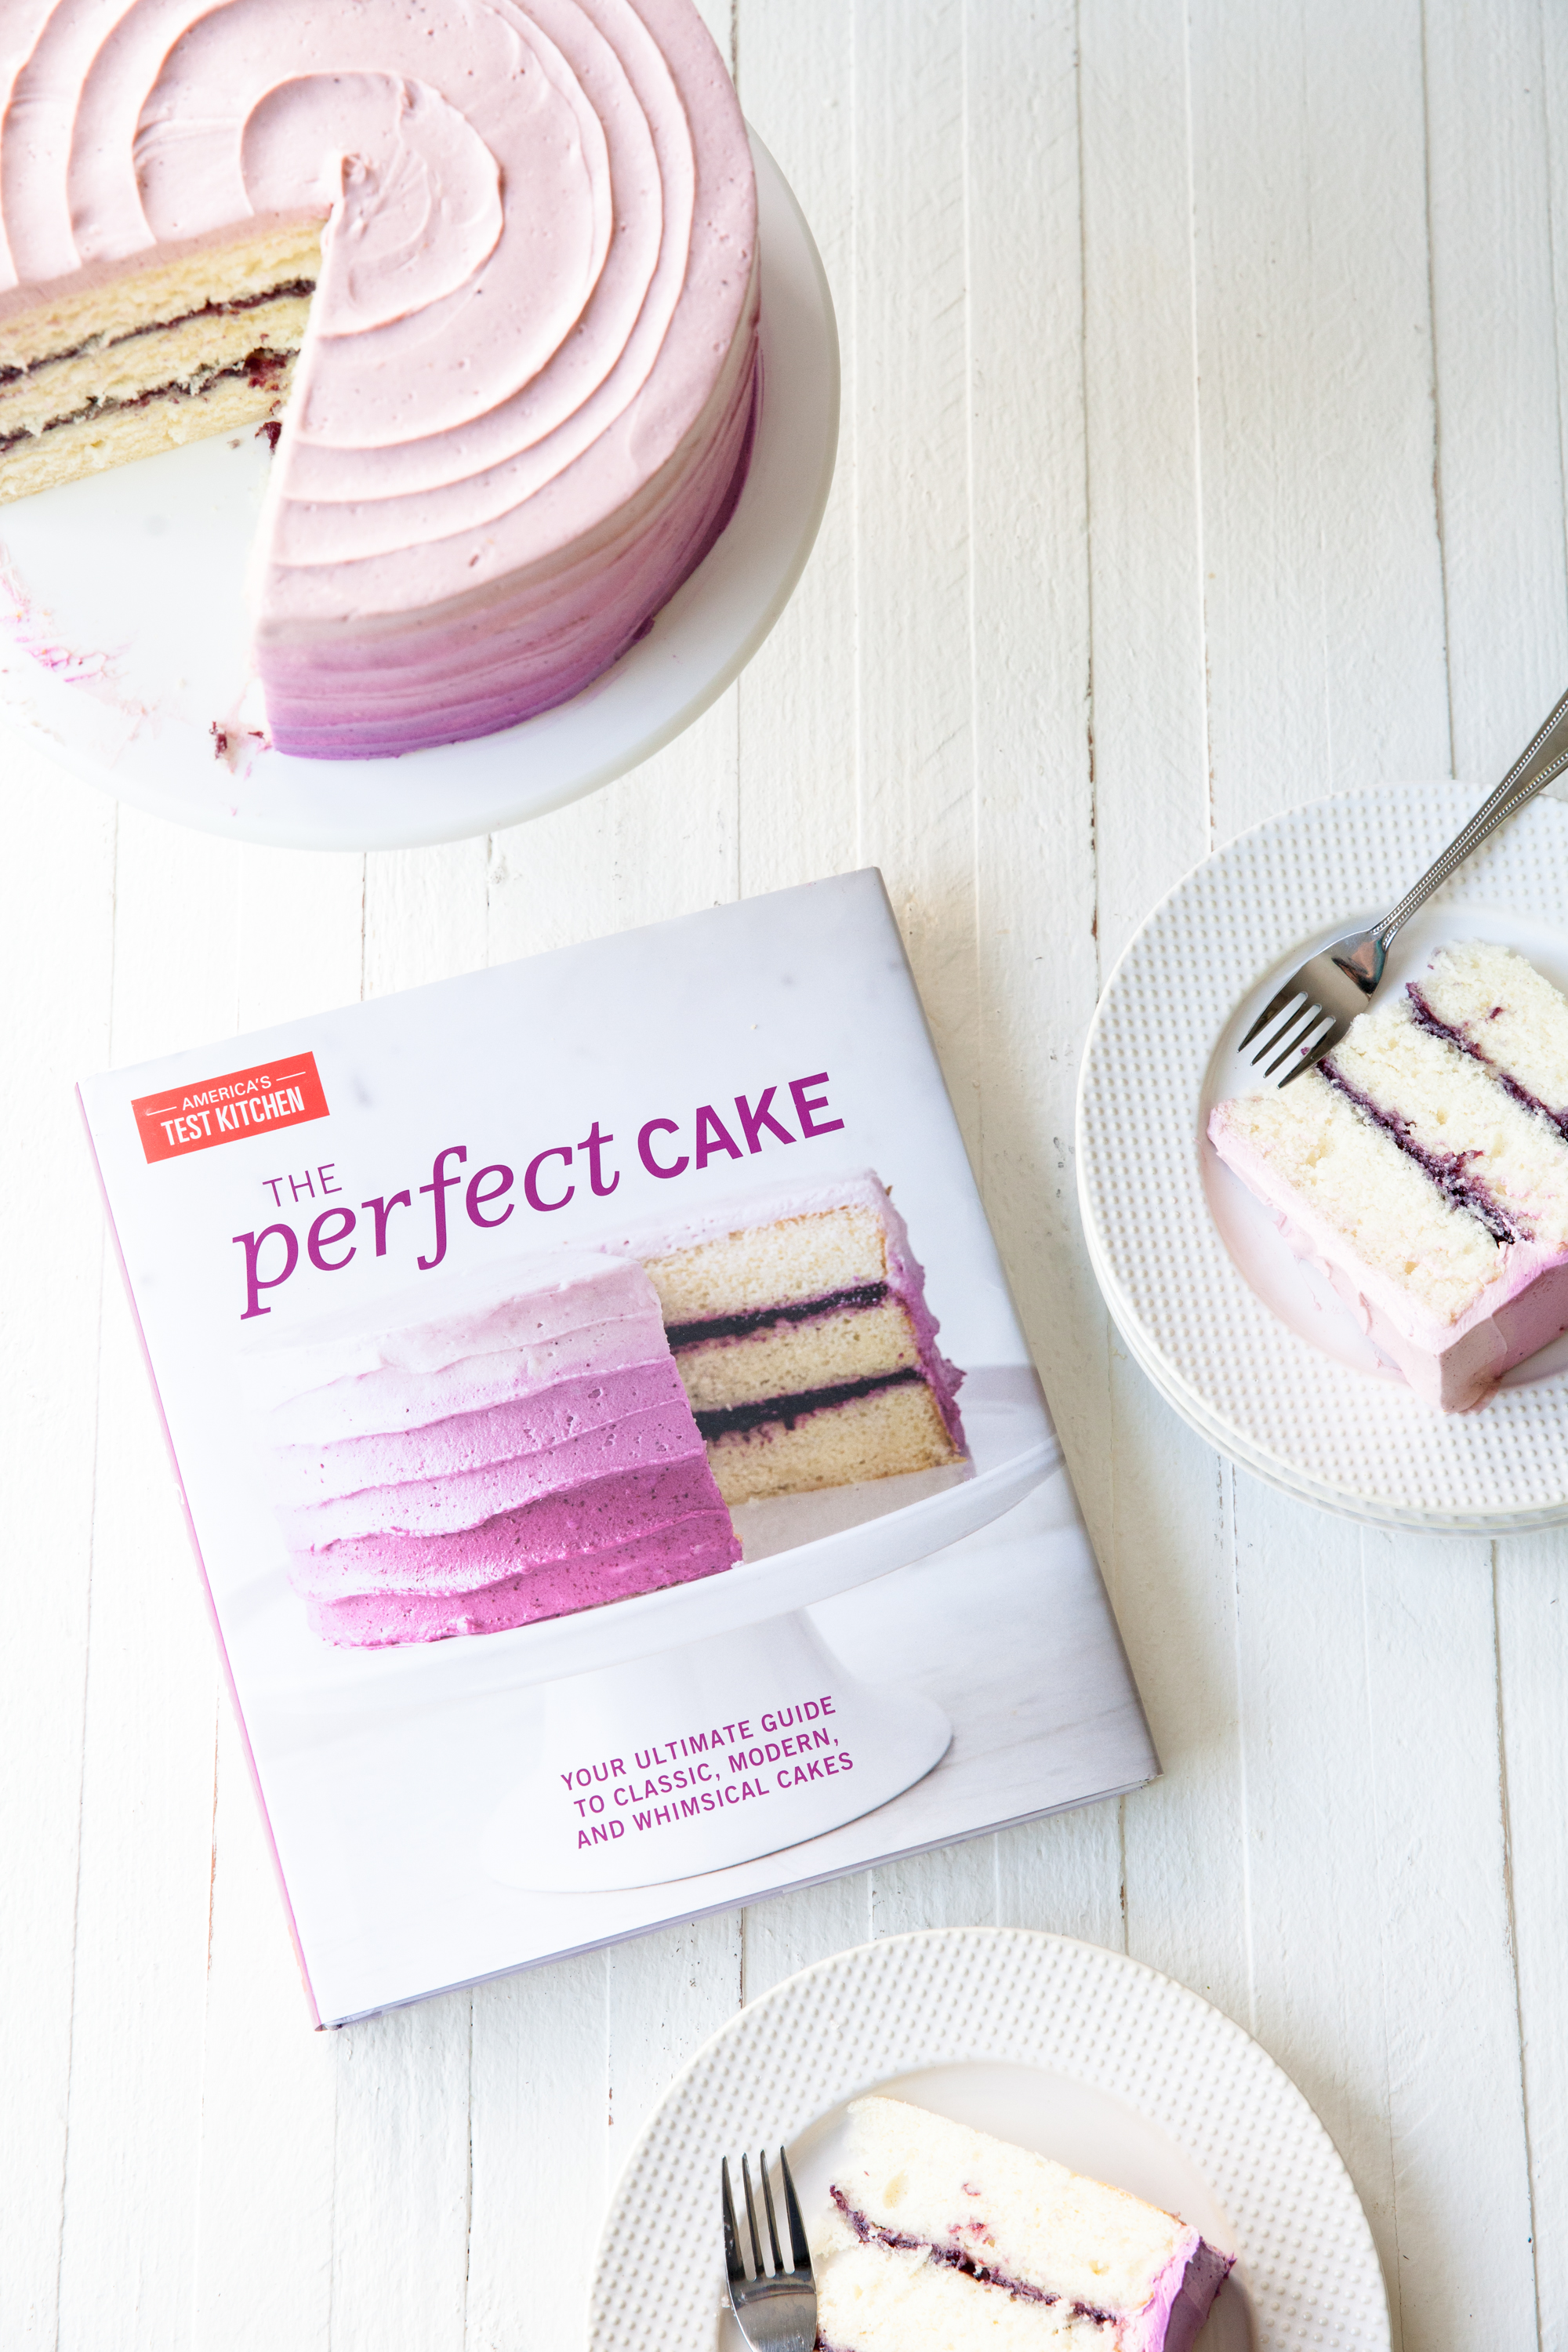 Blueberry Layer Cake Recipe with ombré frosting